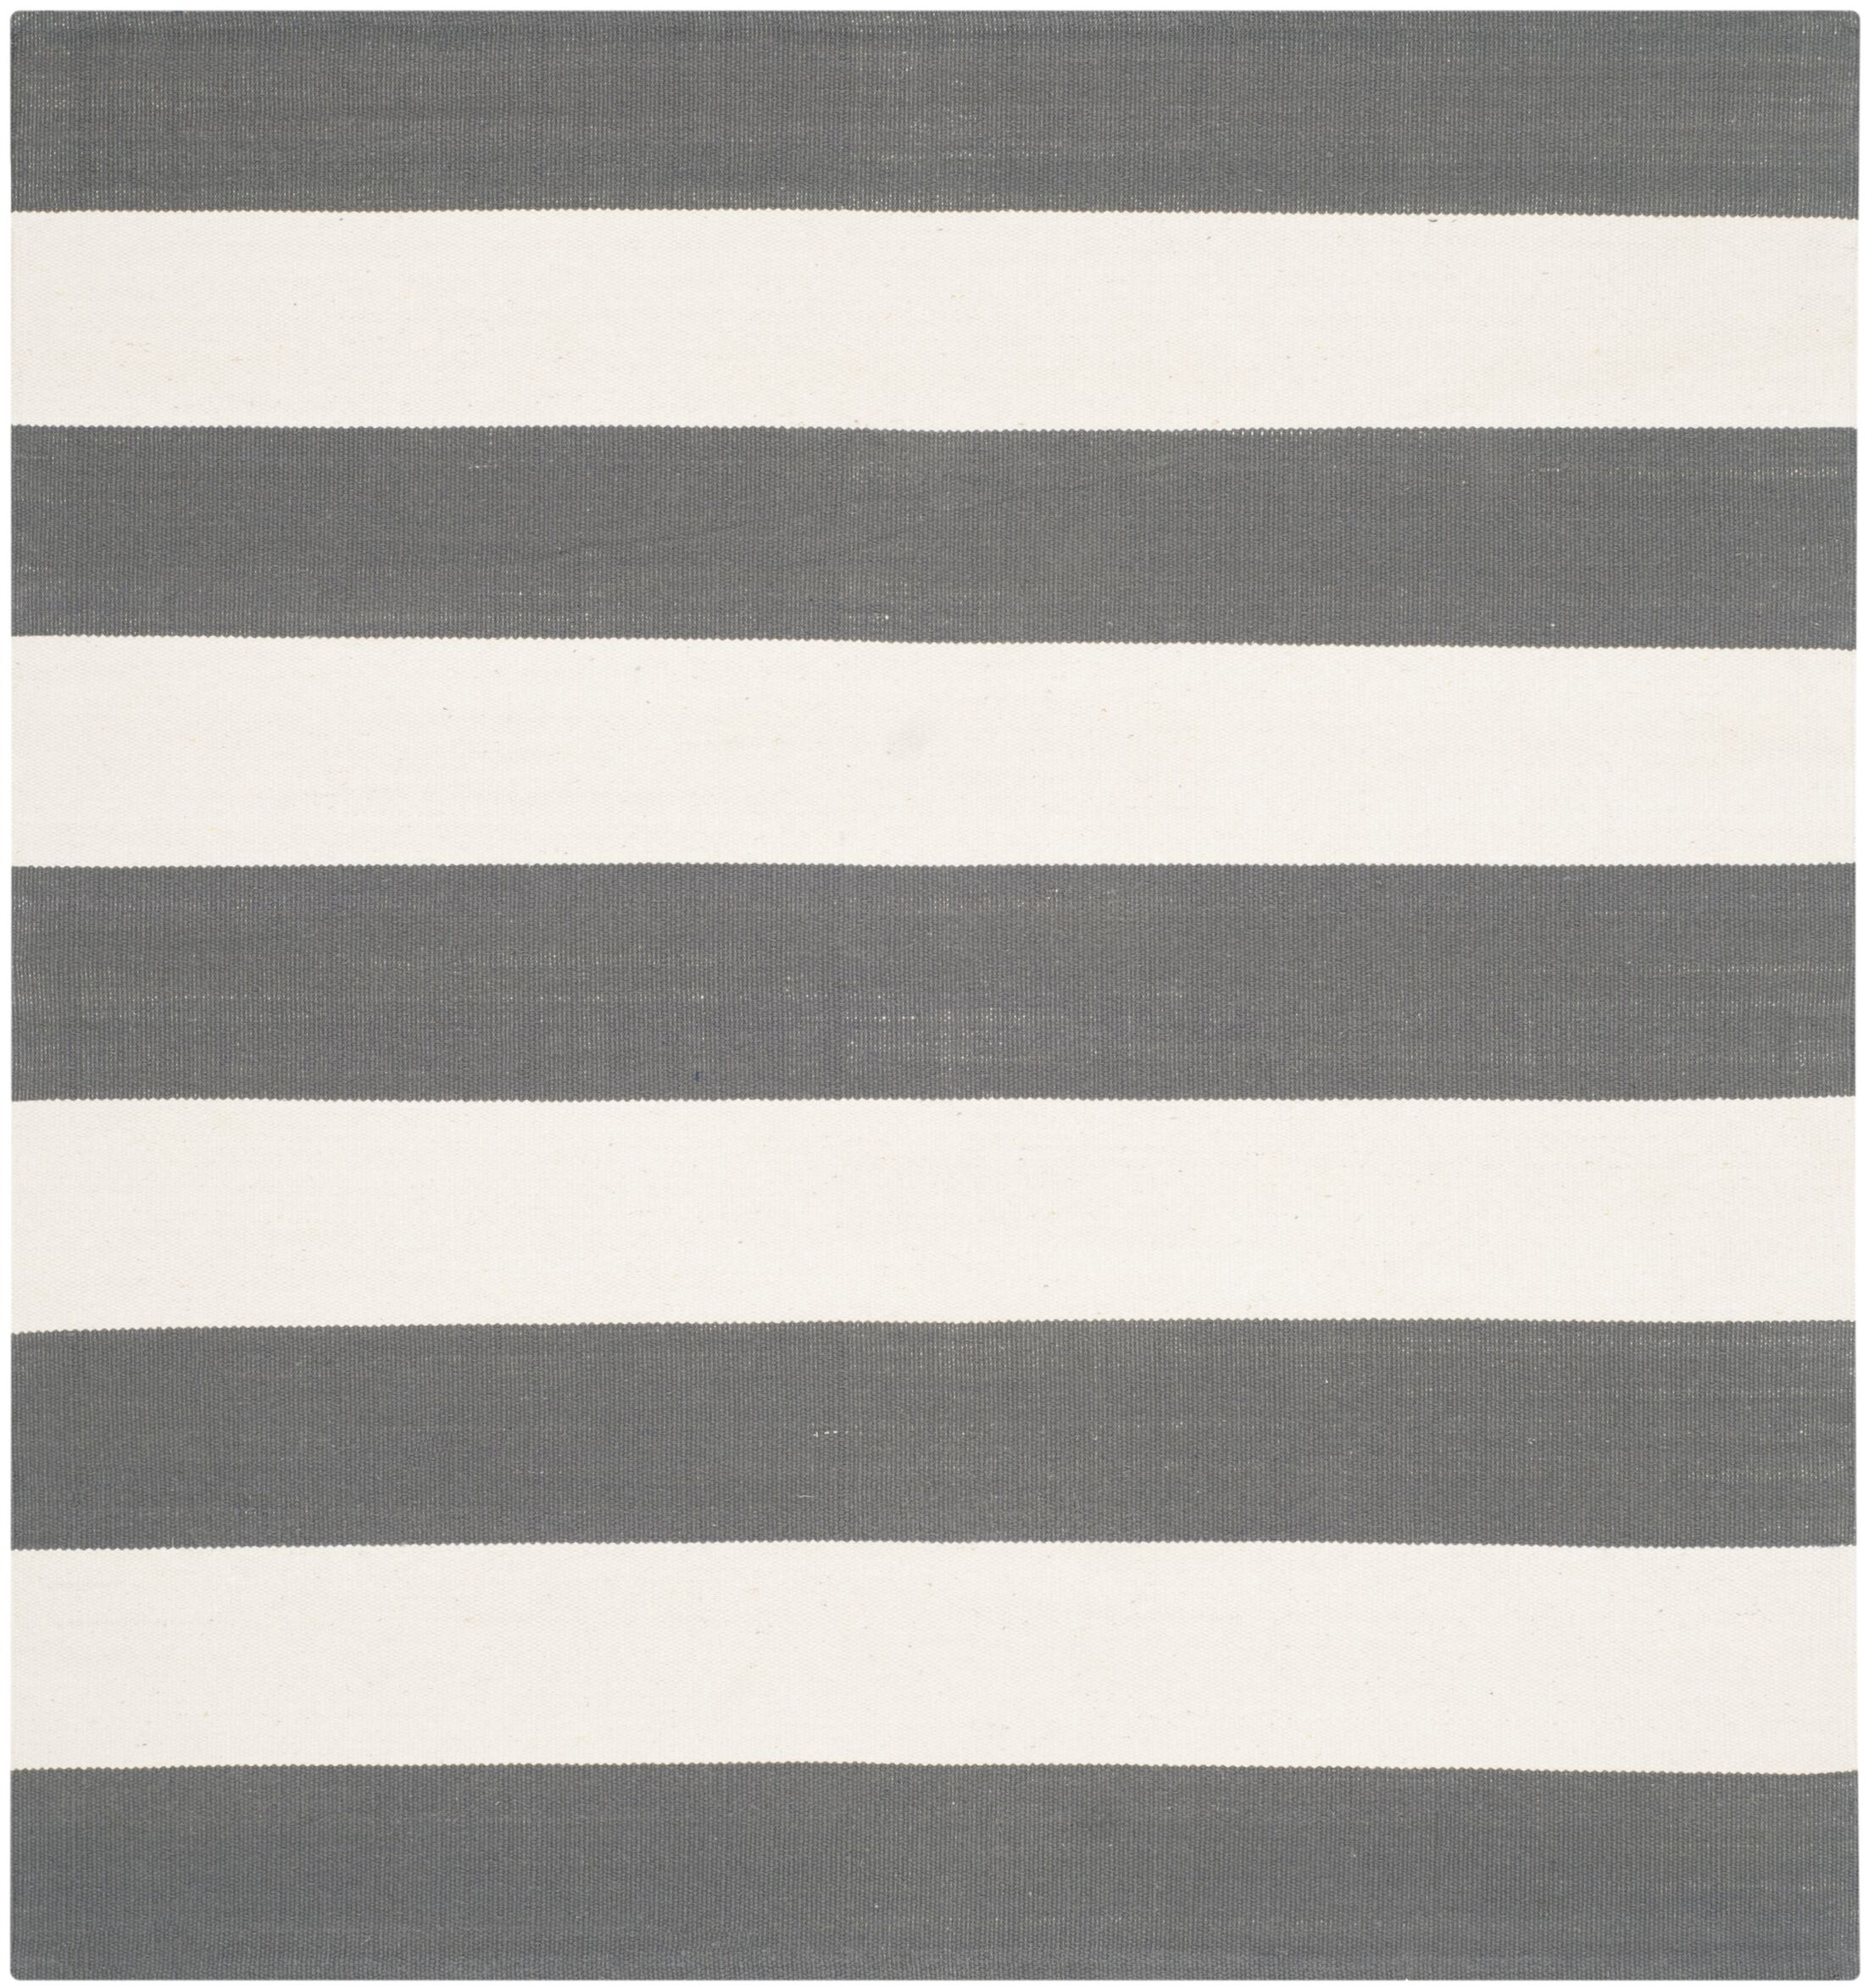 Skyler Hand-Woven Cotton Gray/Ivory Area Rug Rug Size: Square 6'